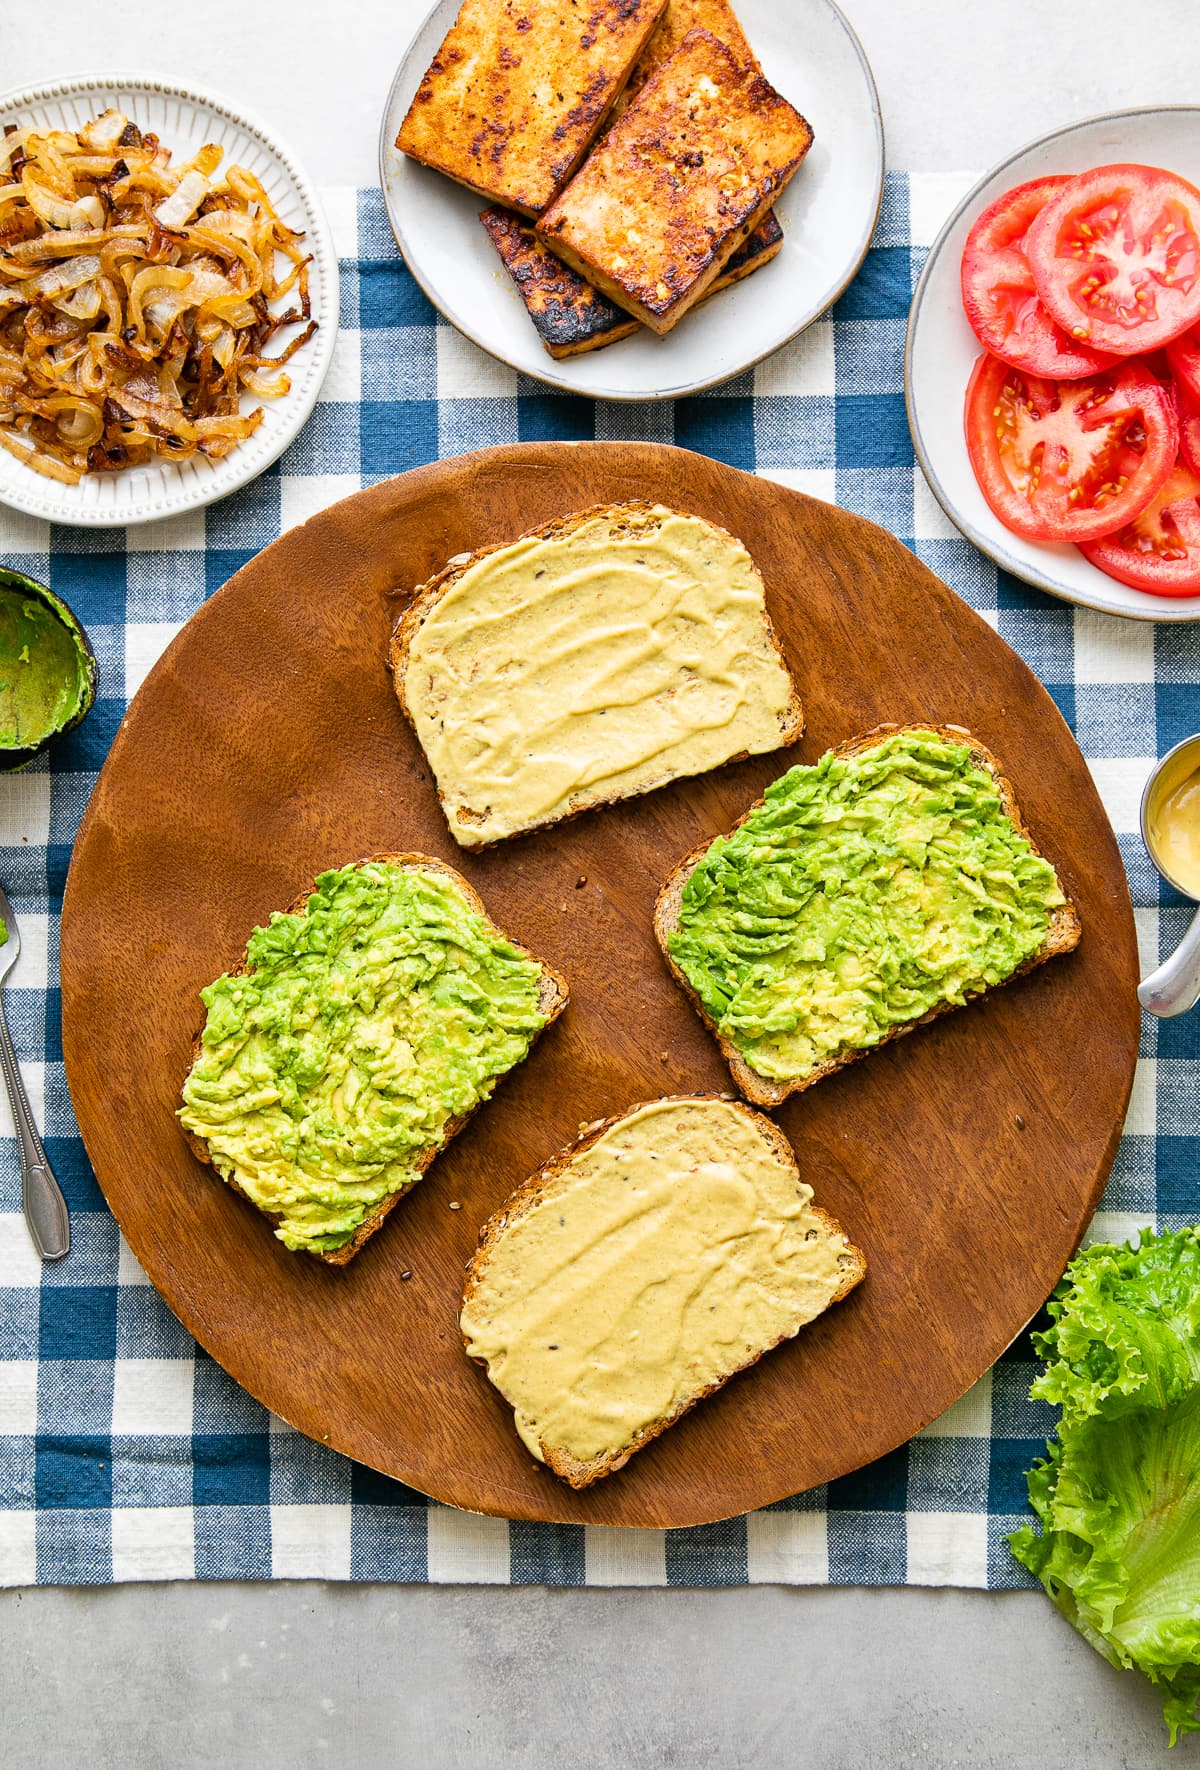 top down view showing bread slices slathered with dijon and avocado.